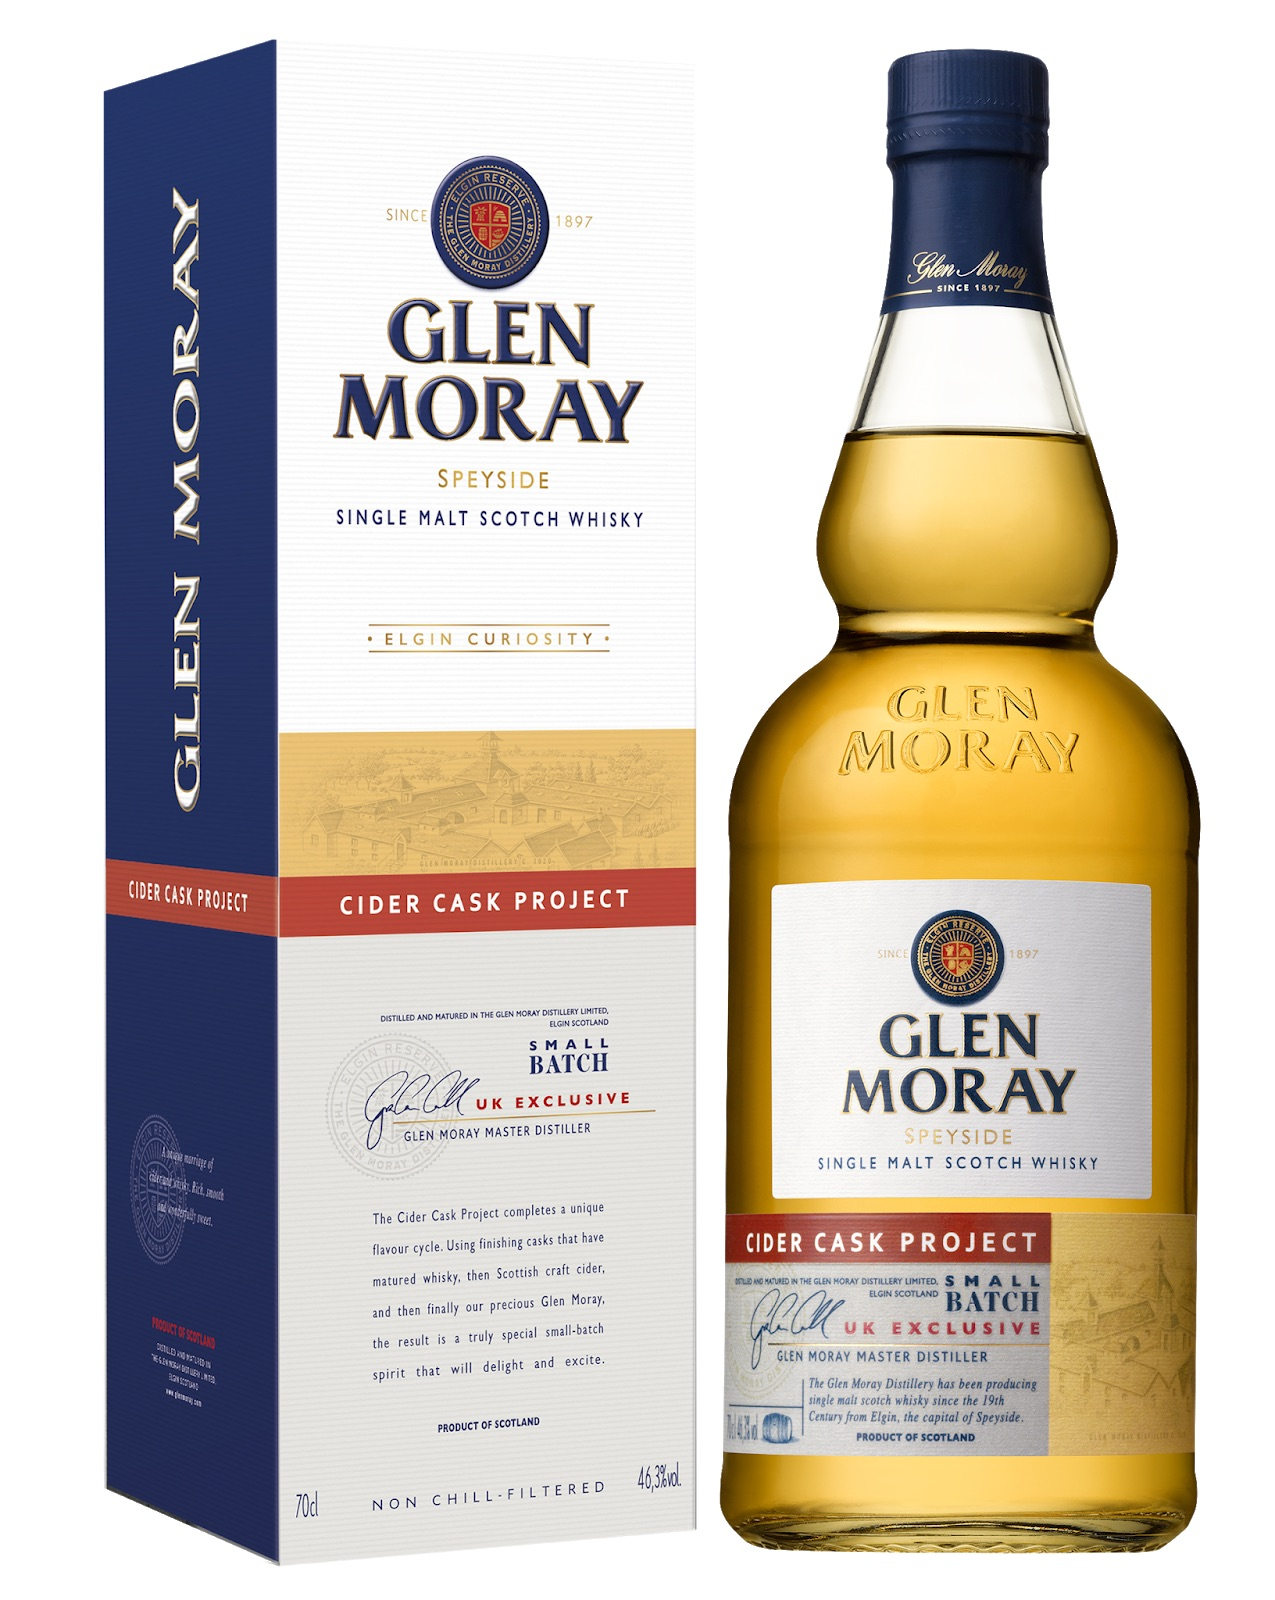 Glen Moray Cider Cask Project has been aged in casks that previously held Thistly Cross Cider